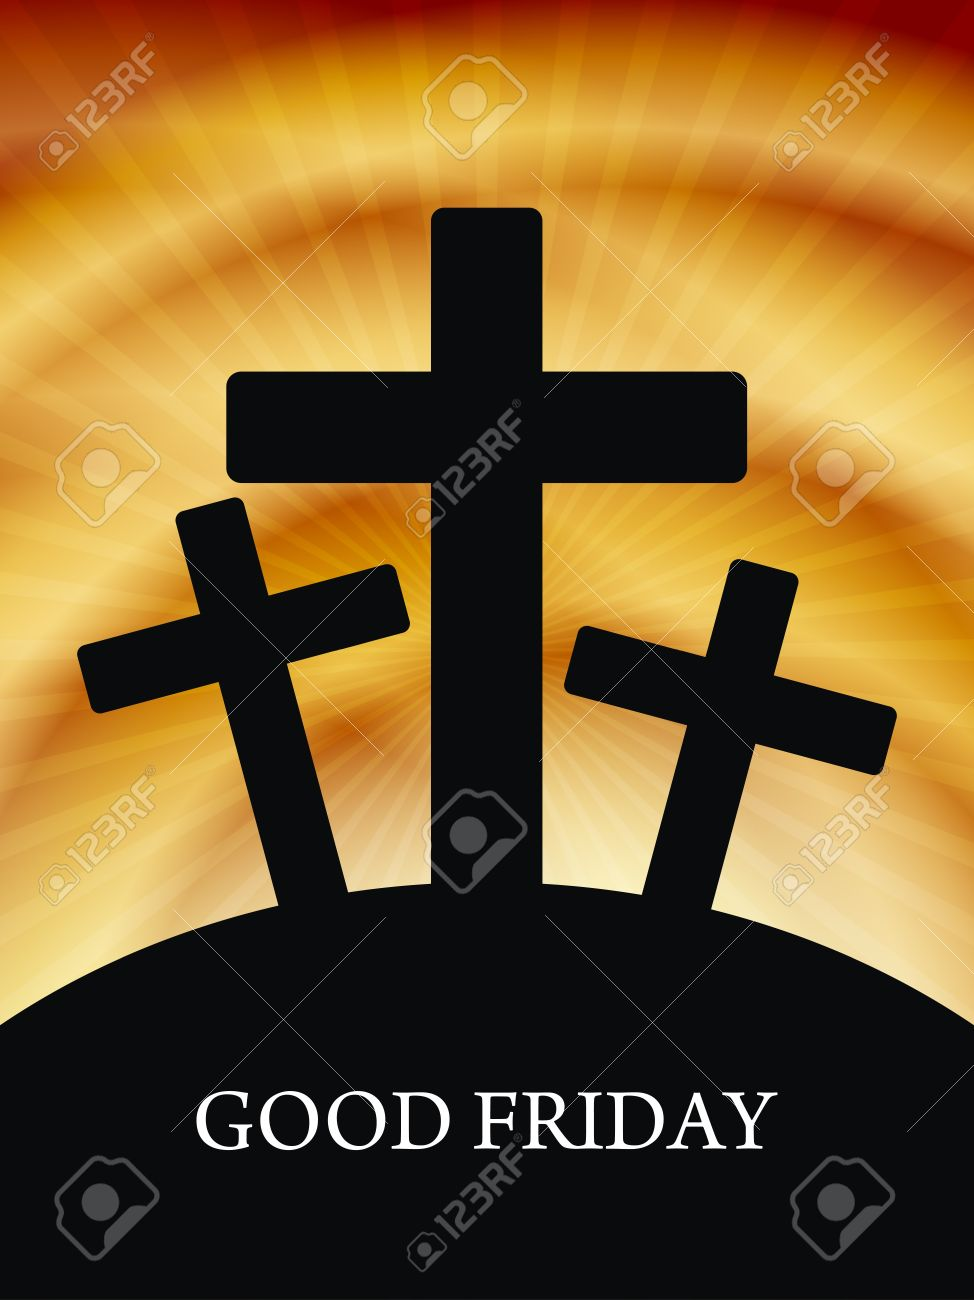 Good Friday Clipart Religious.